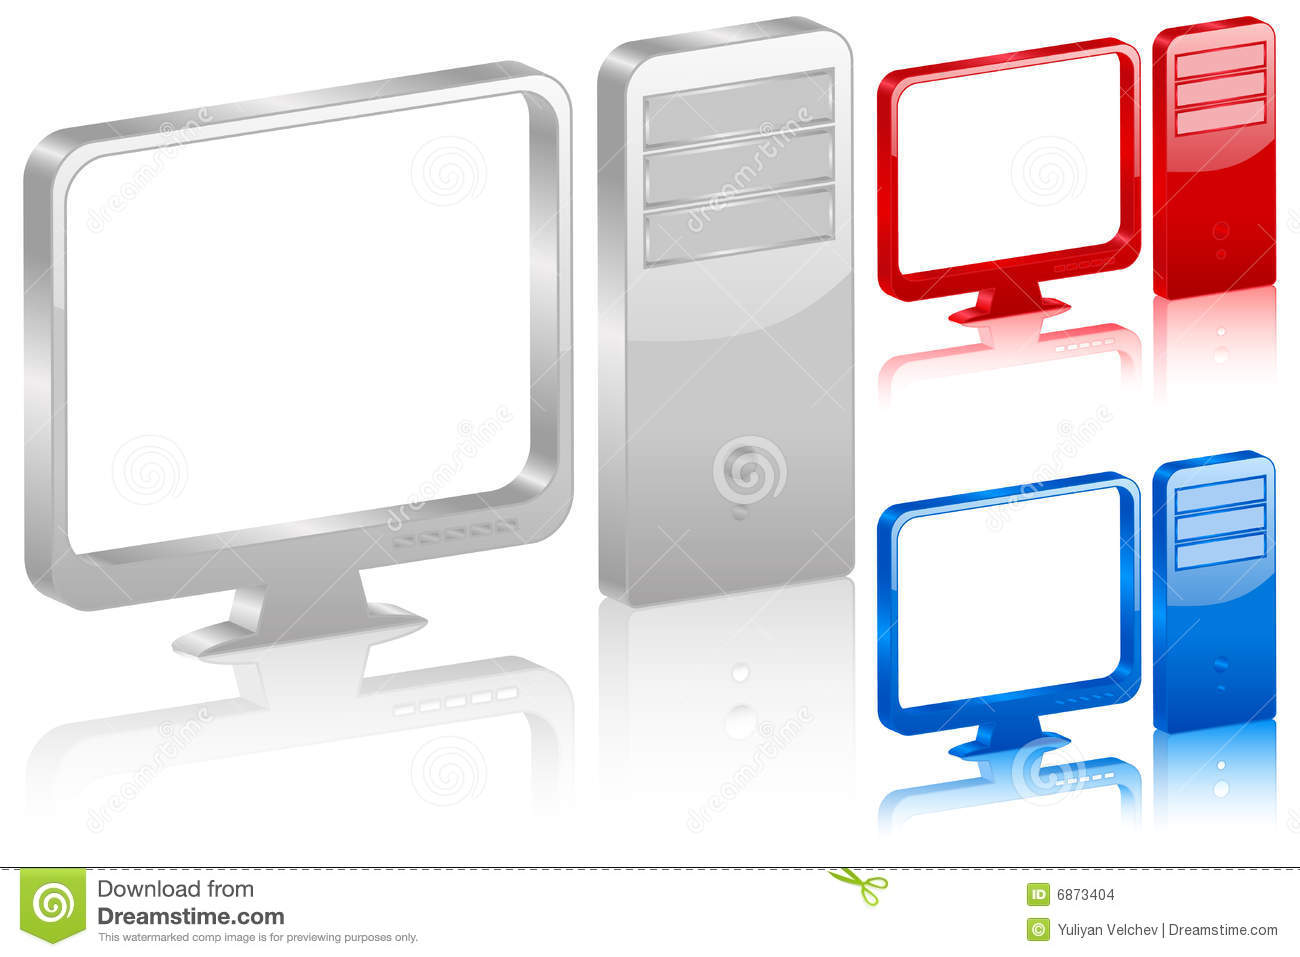 3D Computer Symbol Stock Images - Image: 6873404